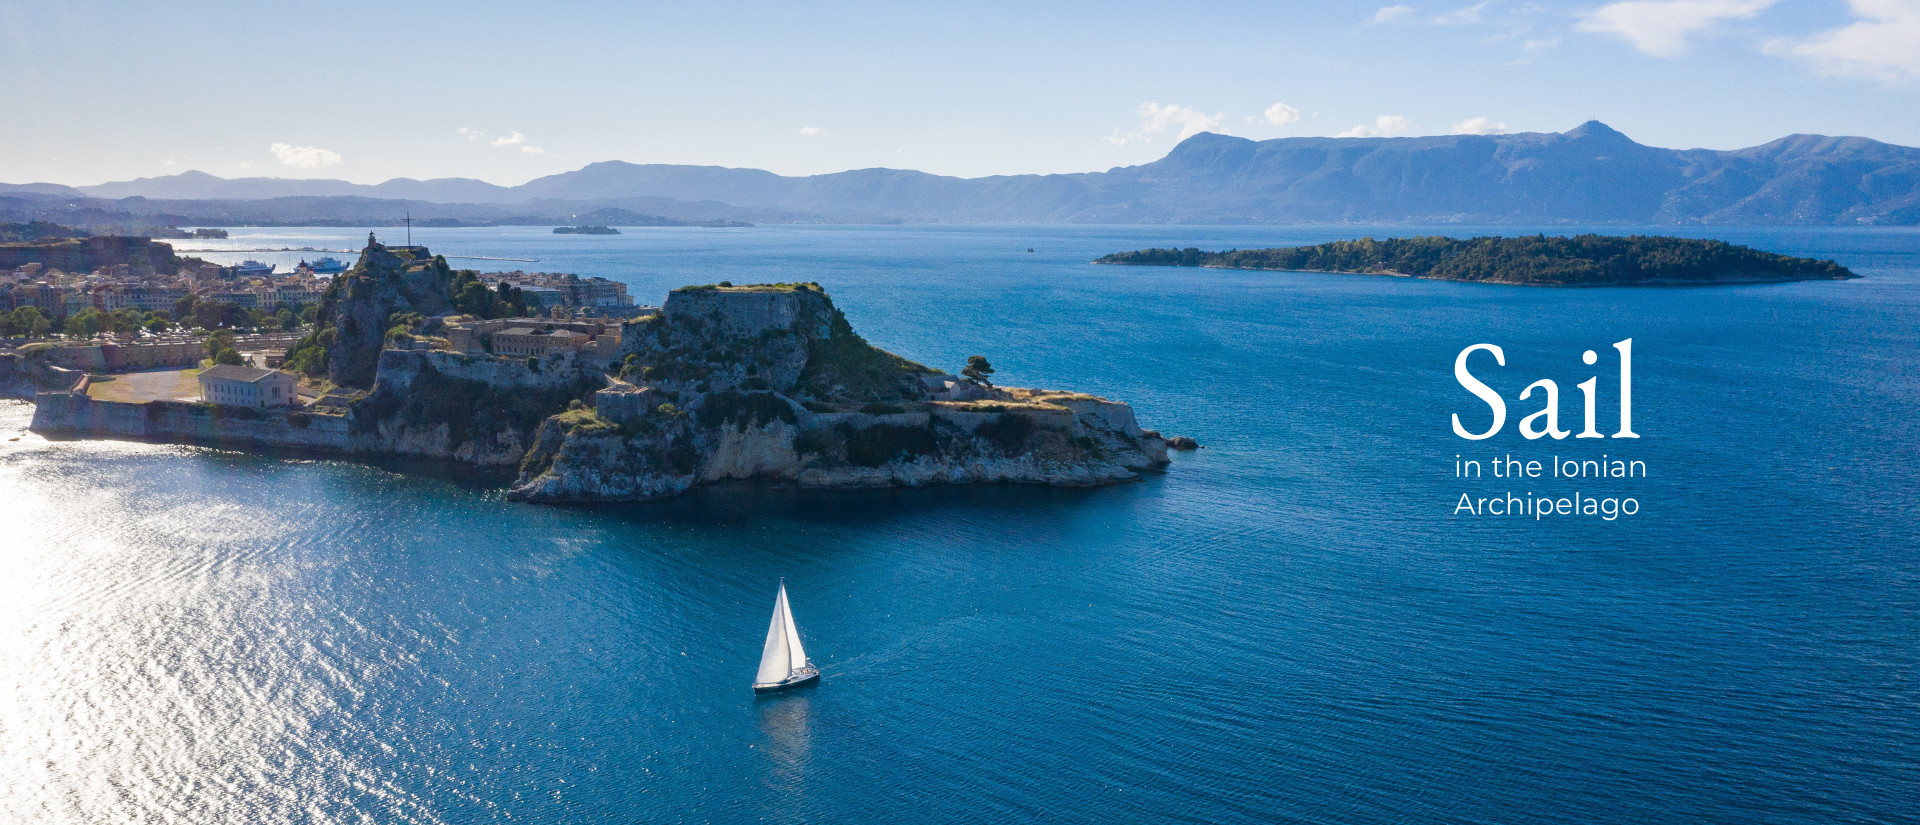 Sail in the Ionian Archipelago